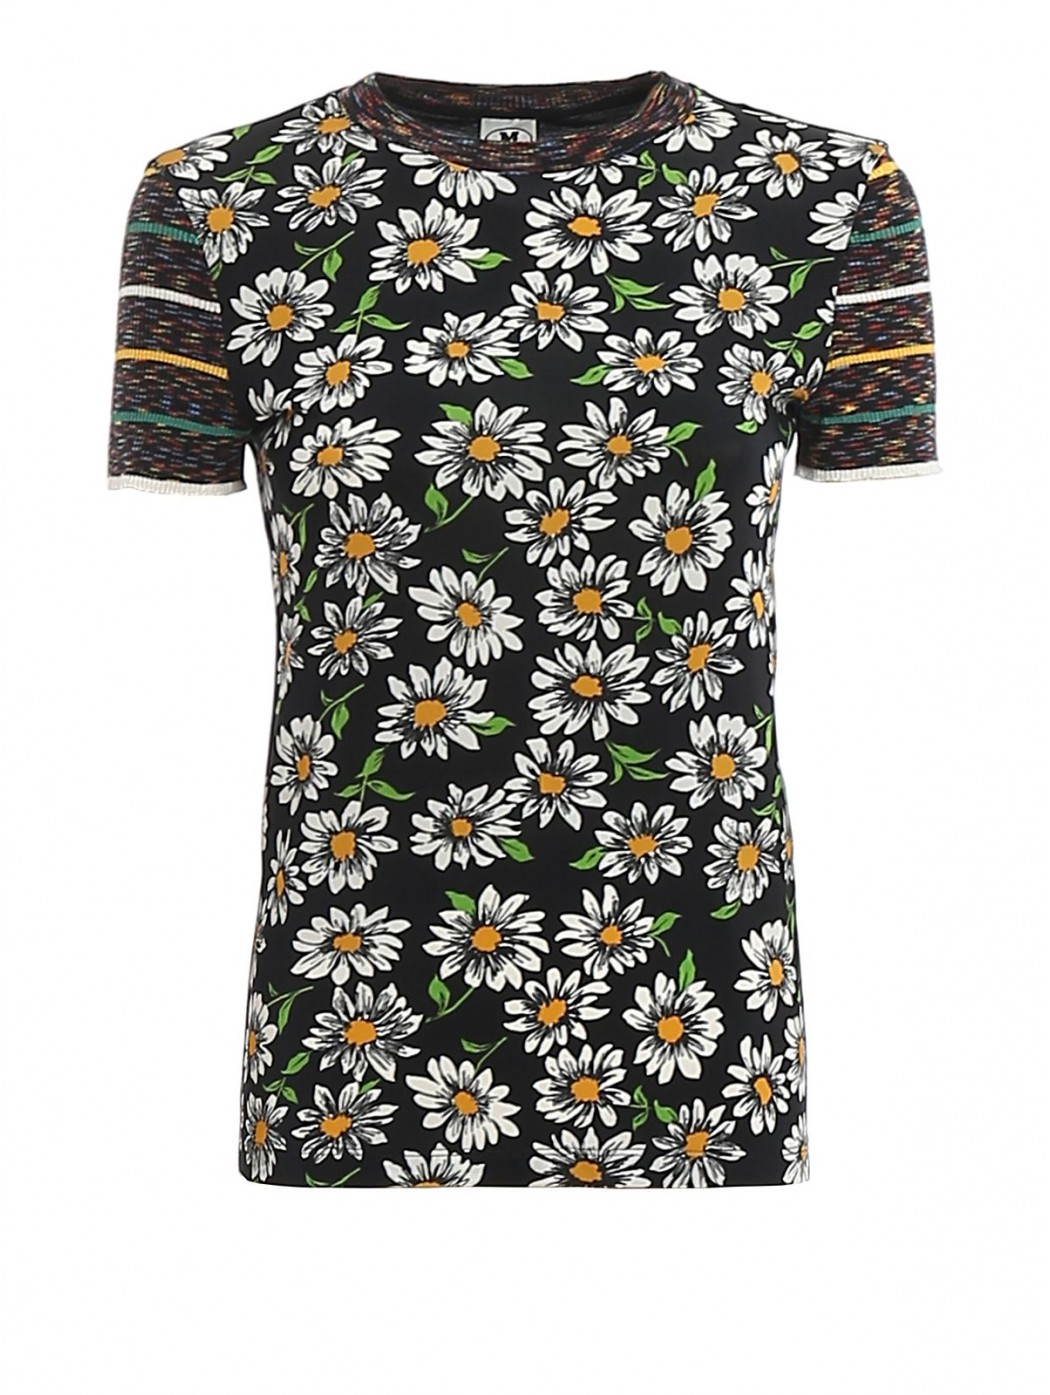 M MISSONI 2dl00019 s909j T-SHIRT